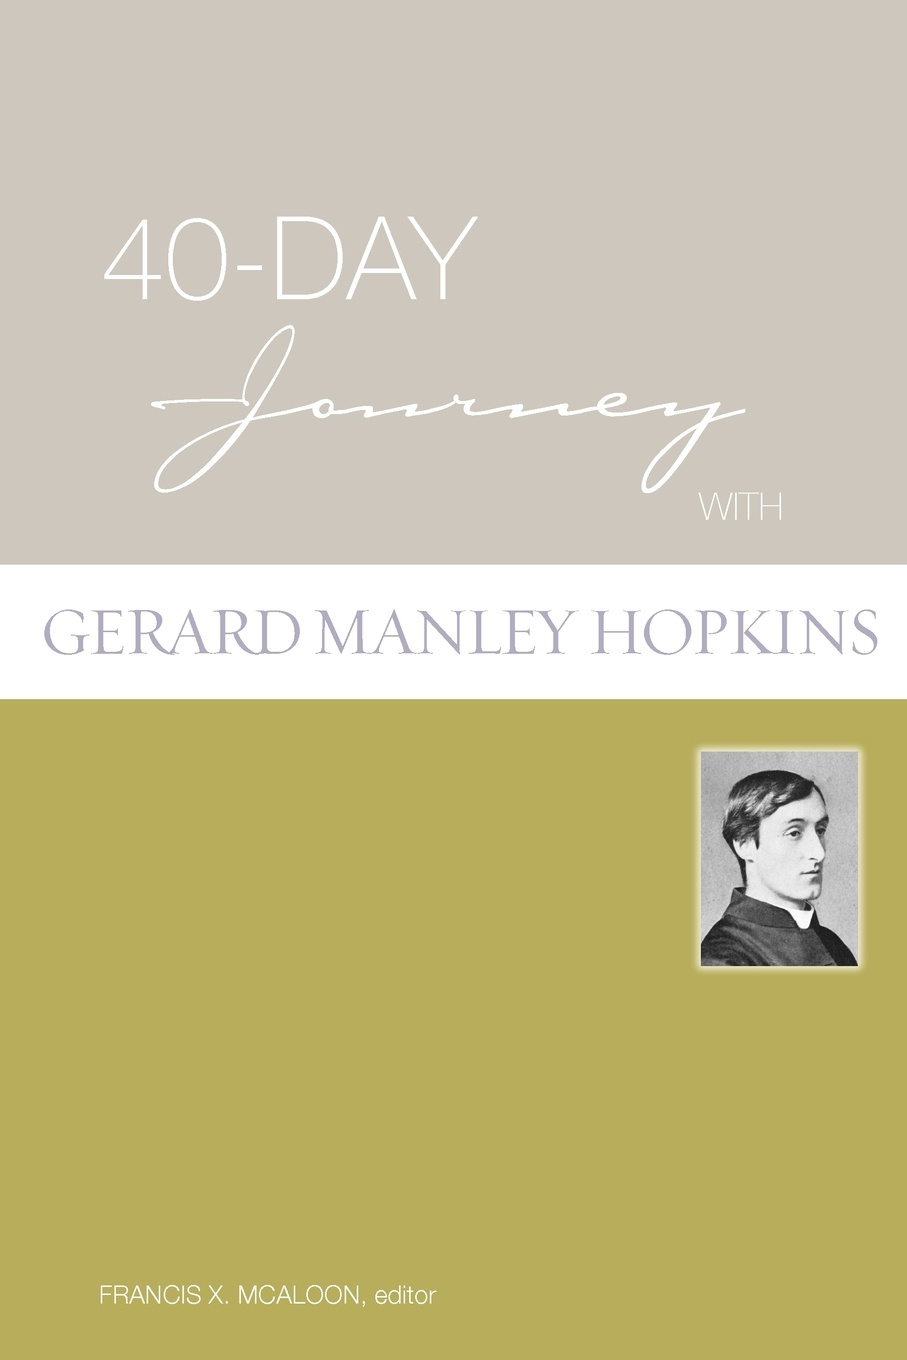 40-Day Journey with Gerard Manley Hopkins